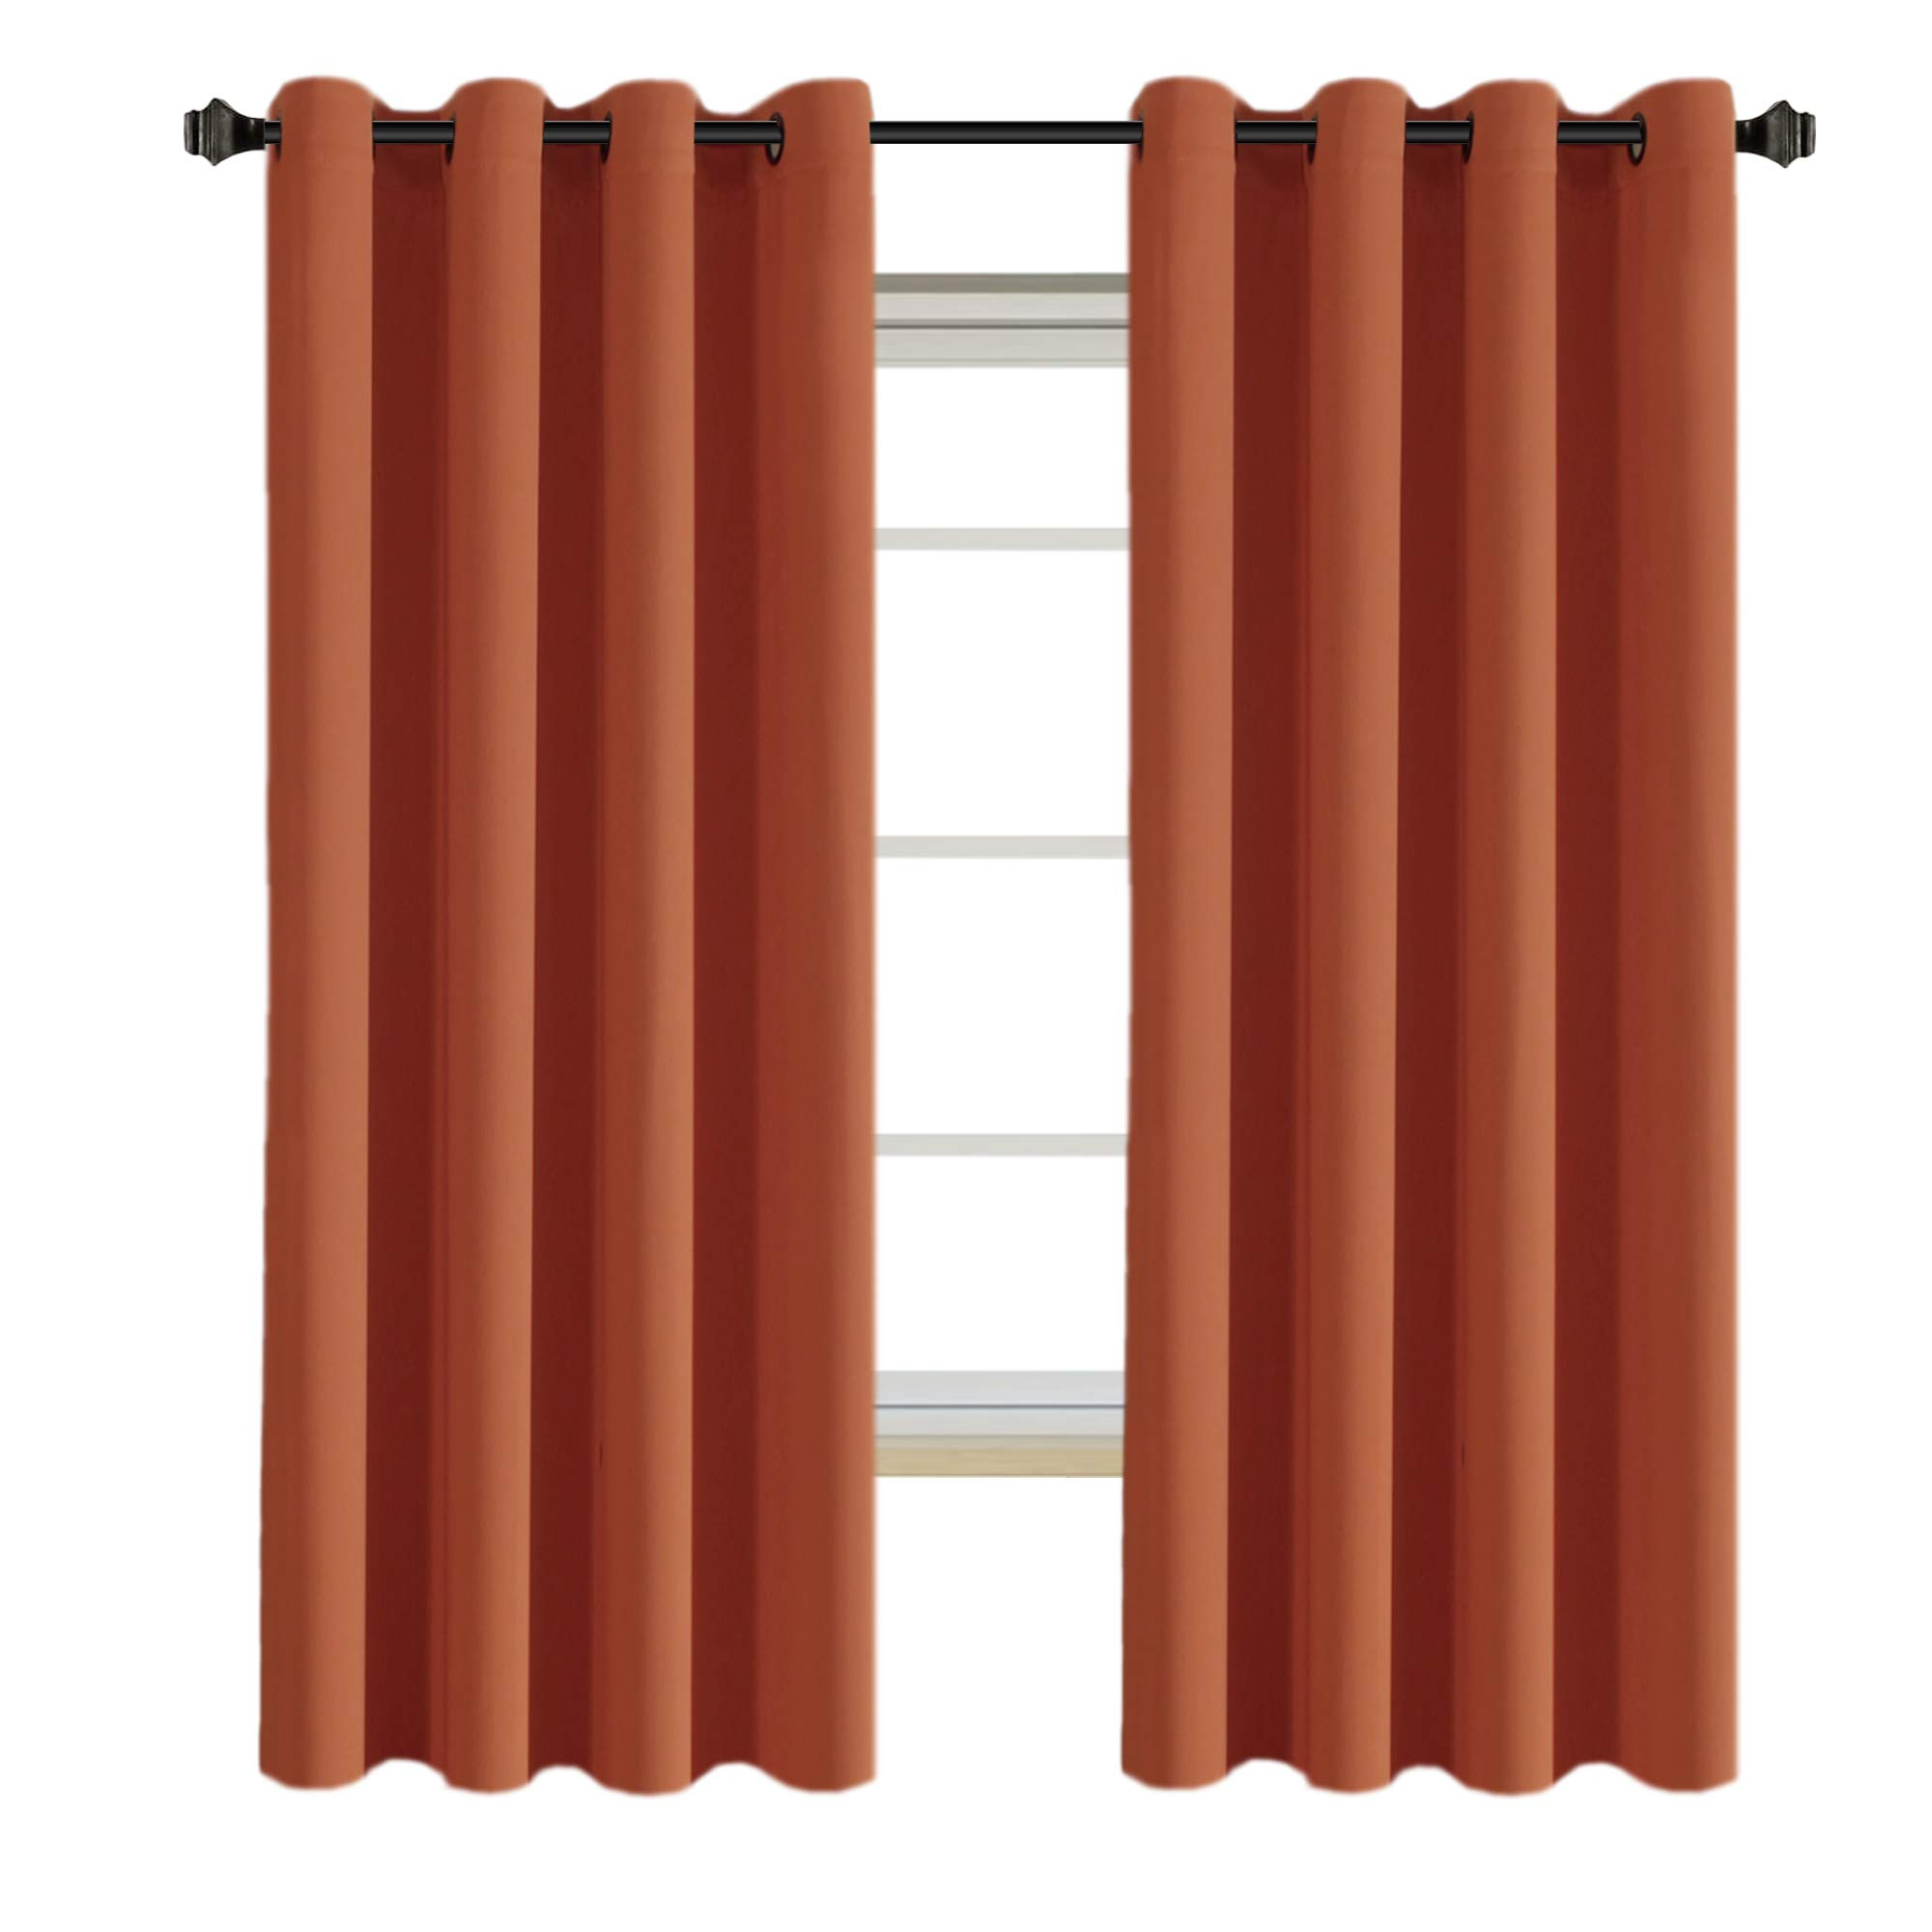 H.VERSAILTEX Solid Thermal Insulated Grommet Blackout Window Curtain Panels for Nursery & Infant Care - Burnt Orange - 52'' W x 72'' L - Set of 2 Panels